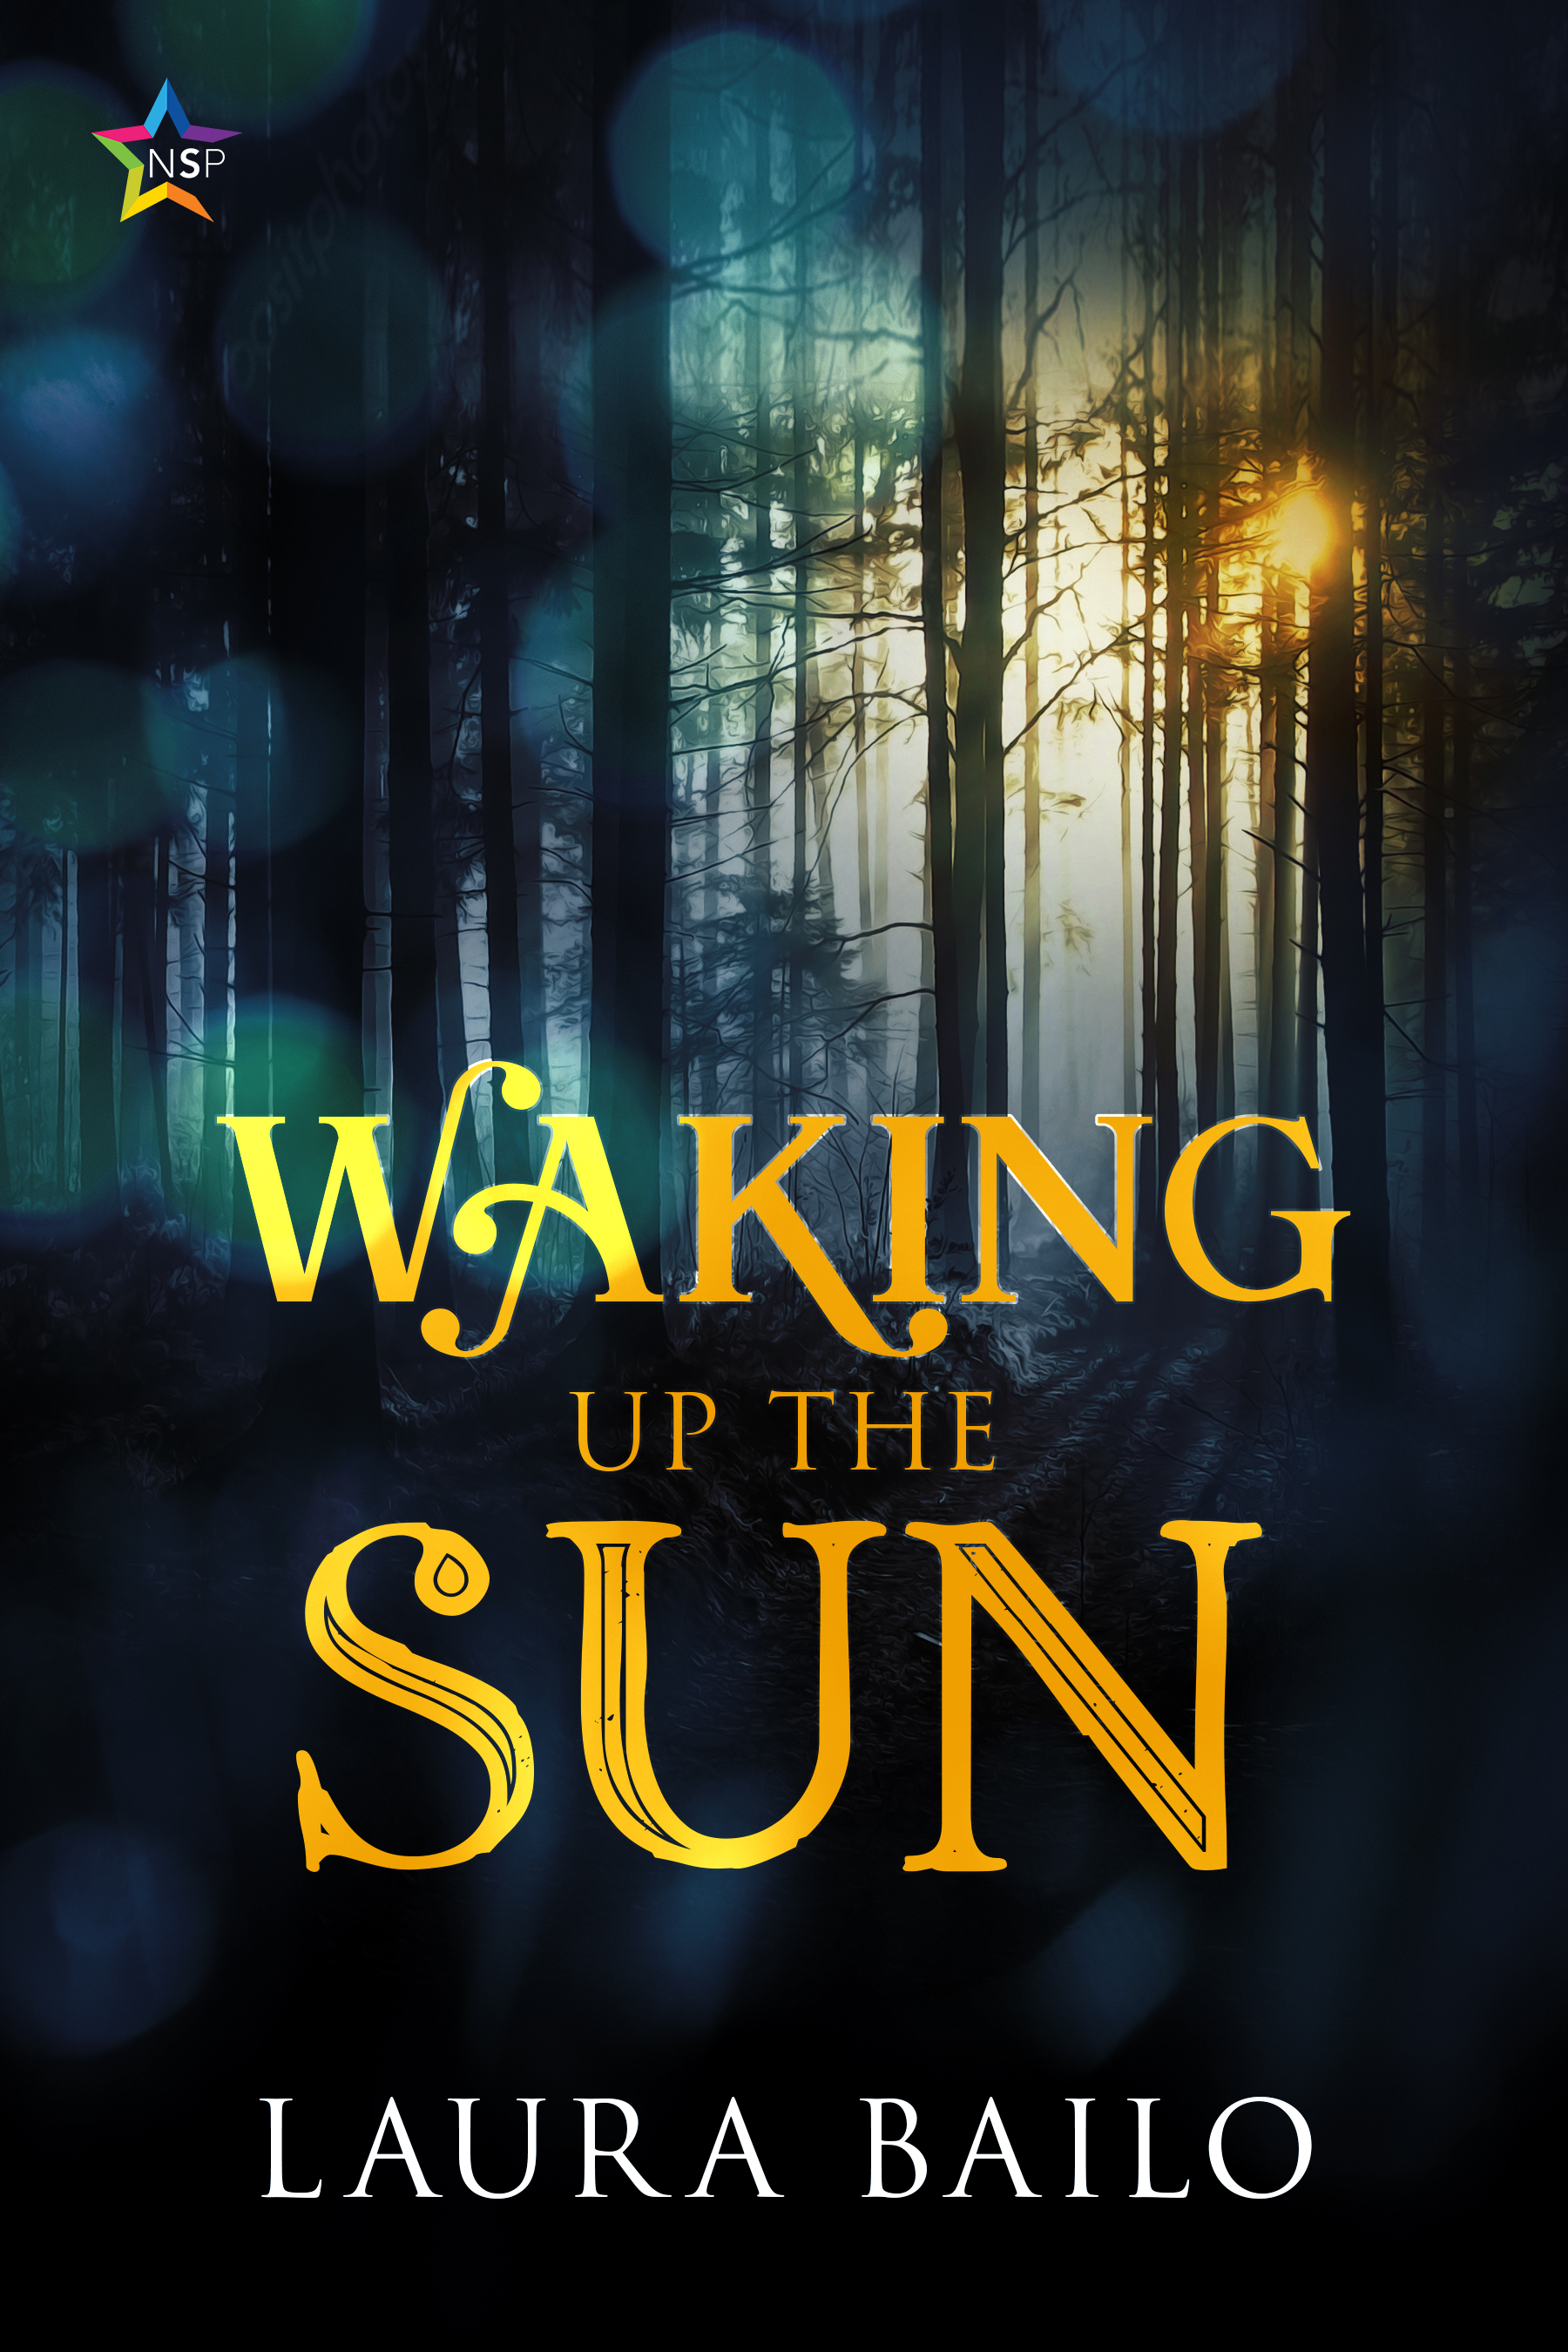 Guest Post: Waking Up the Sun by Laura Bailo